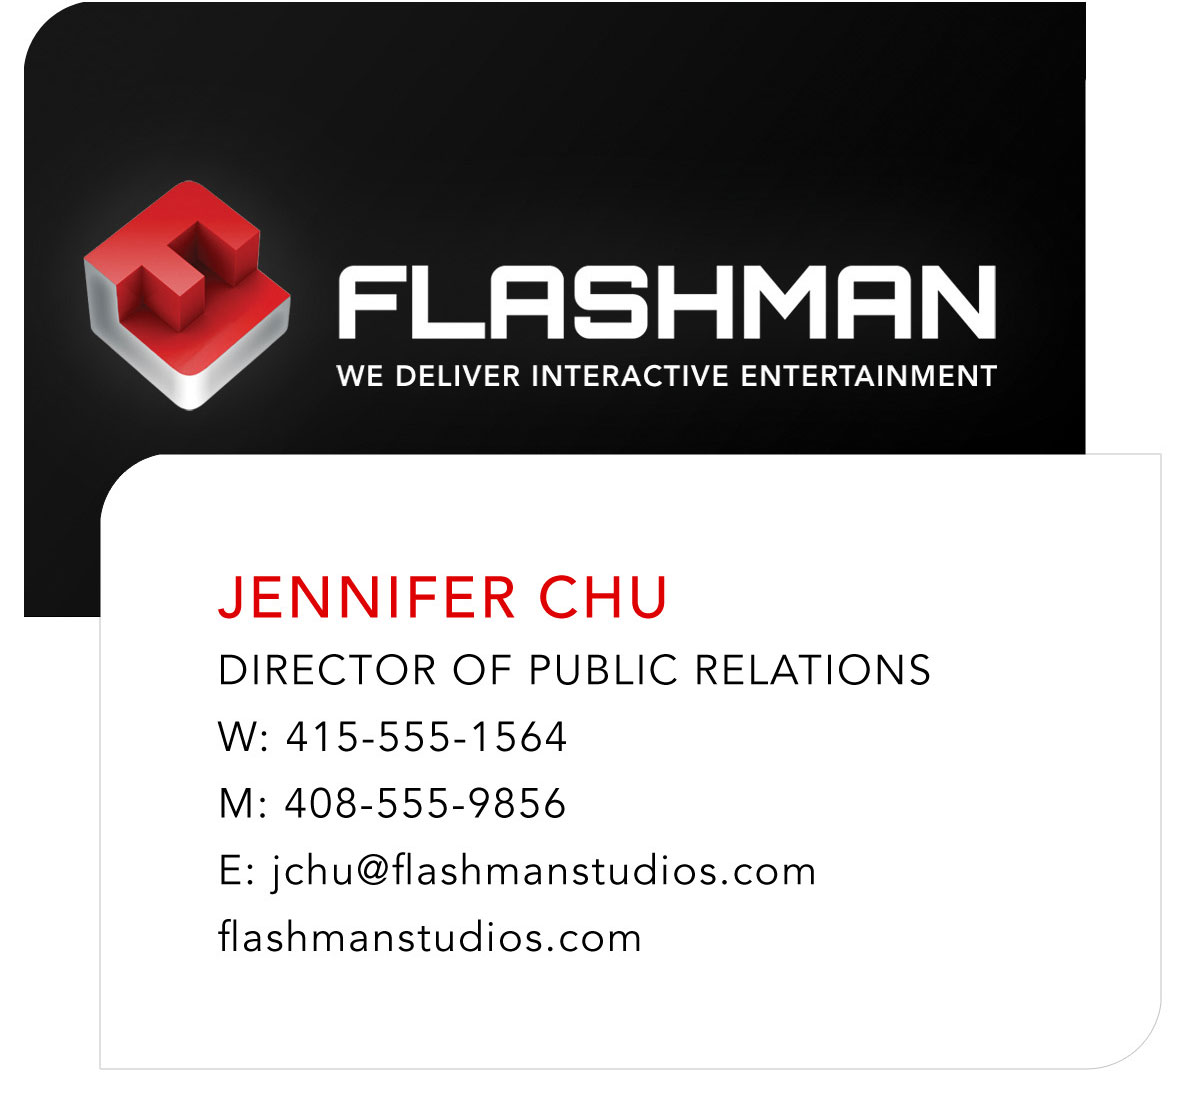 Business Cards and Marketing Collateral